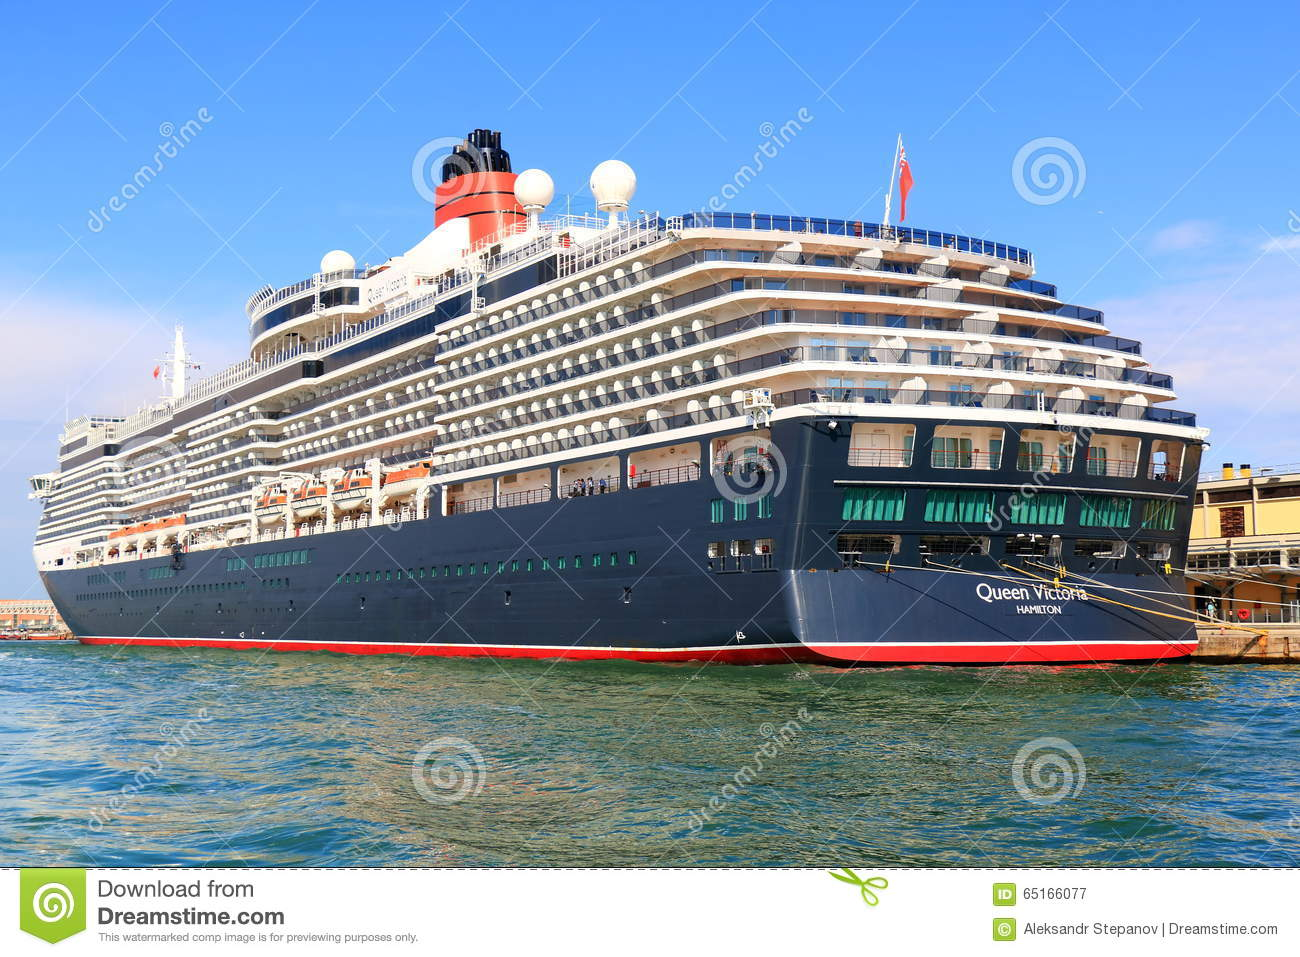 Moored Cruise Ship Queen Victoria In Port Of Venice, Italy.